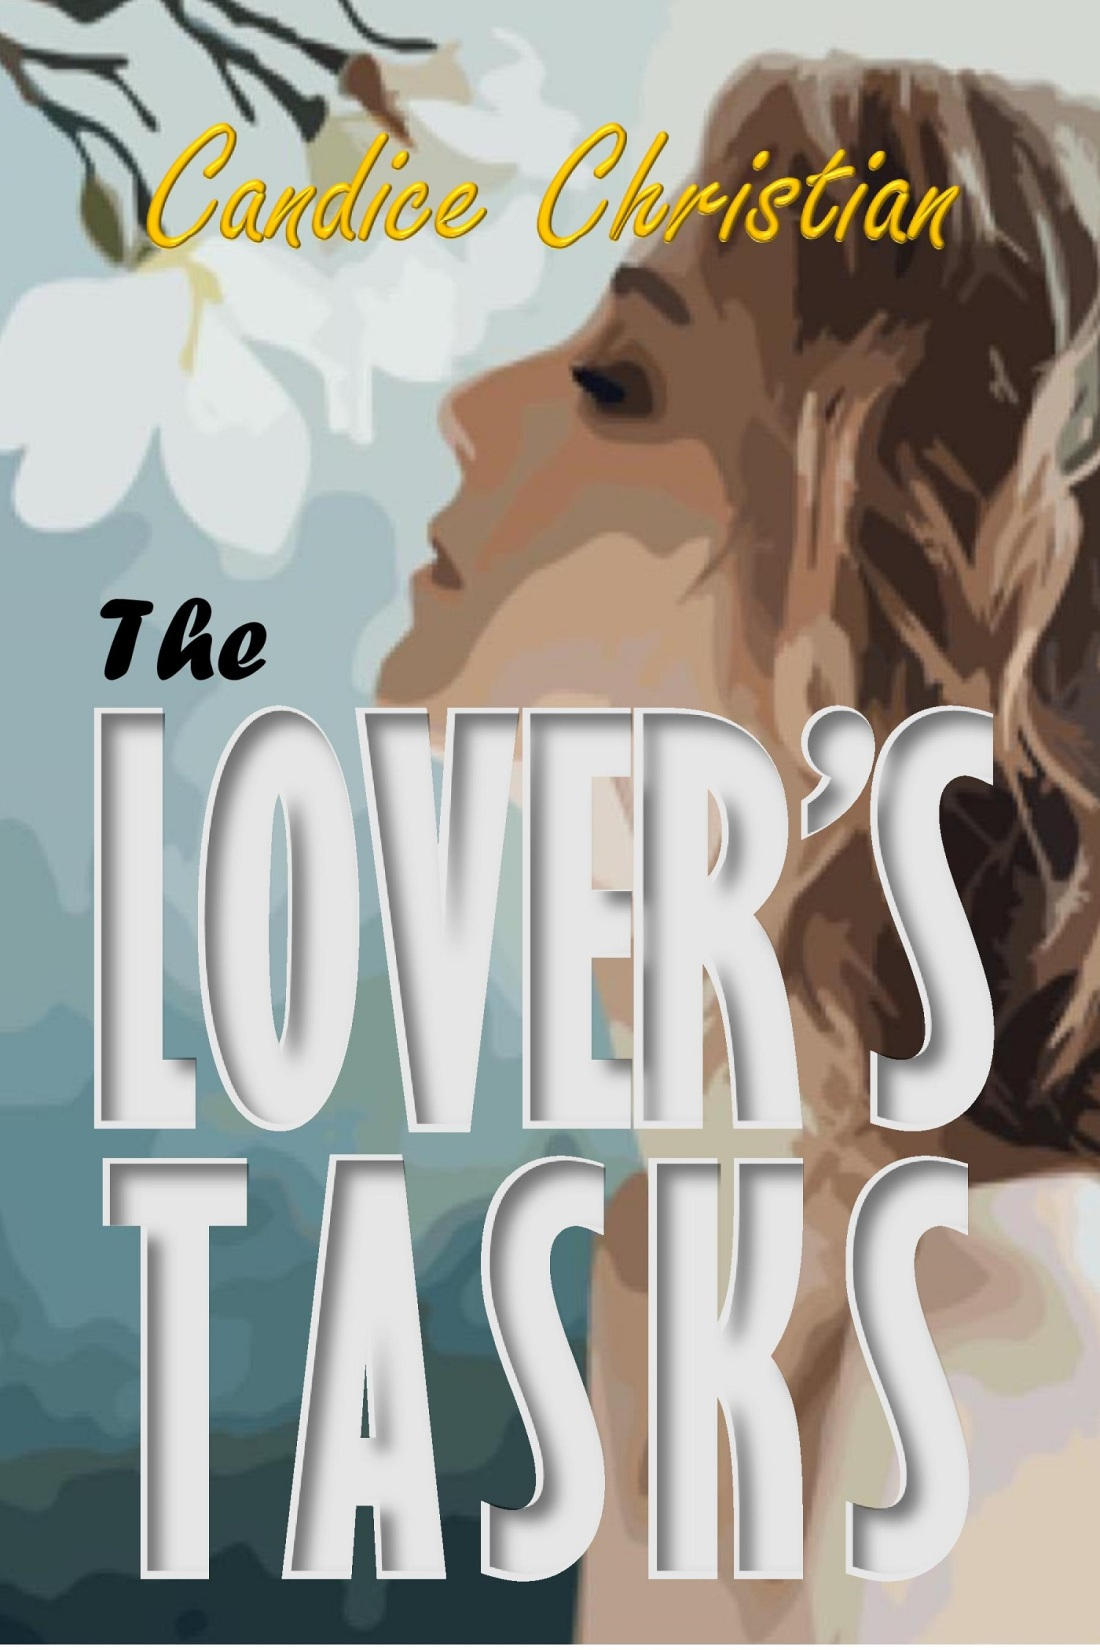 THE LOVER S TASKS COVER-RESIZED